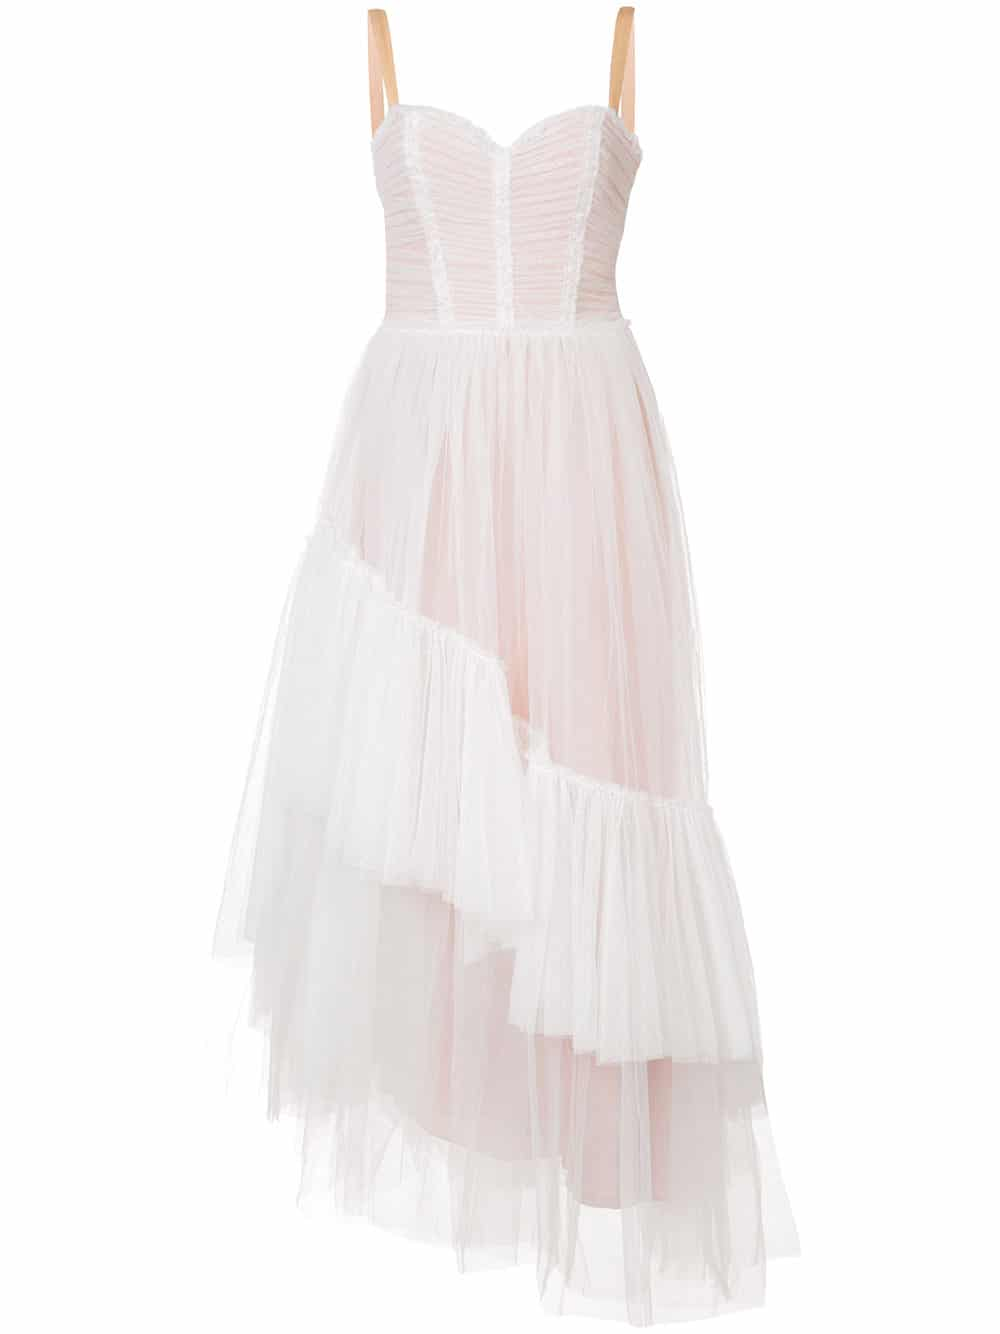 CINQ A SEPT Tulle Layered Asymmetric Ivory Dress